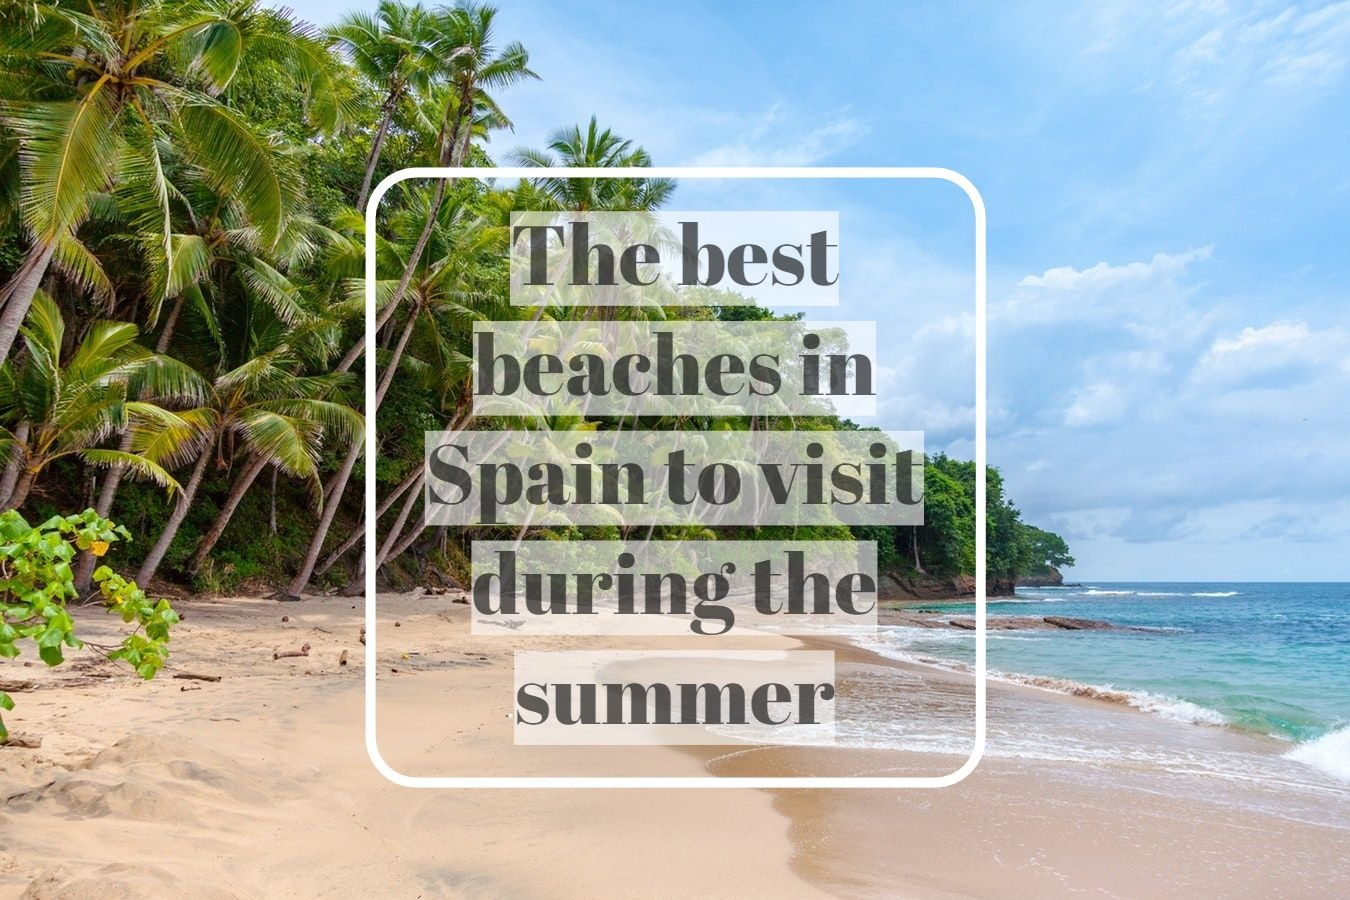 playas ingles - The best beaches in Spain to visit during the summer